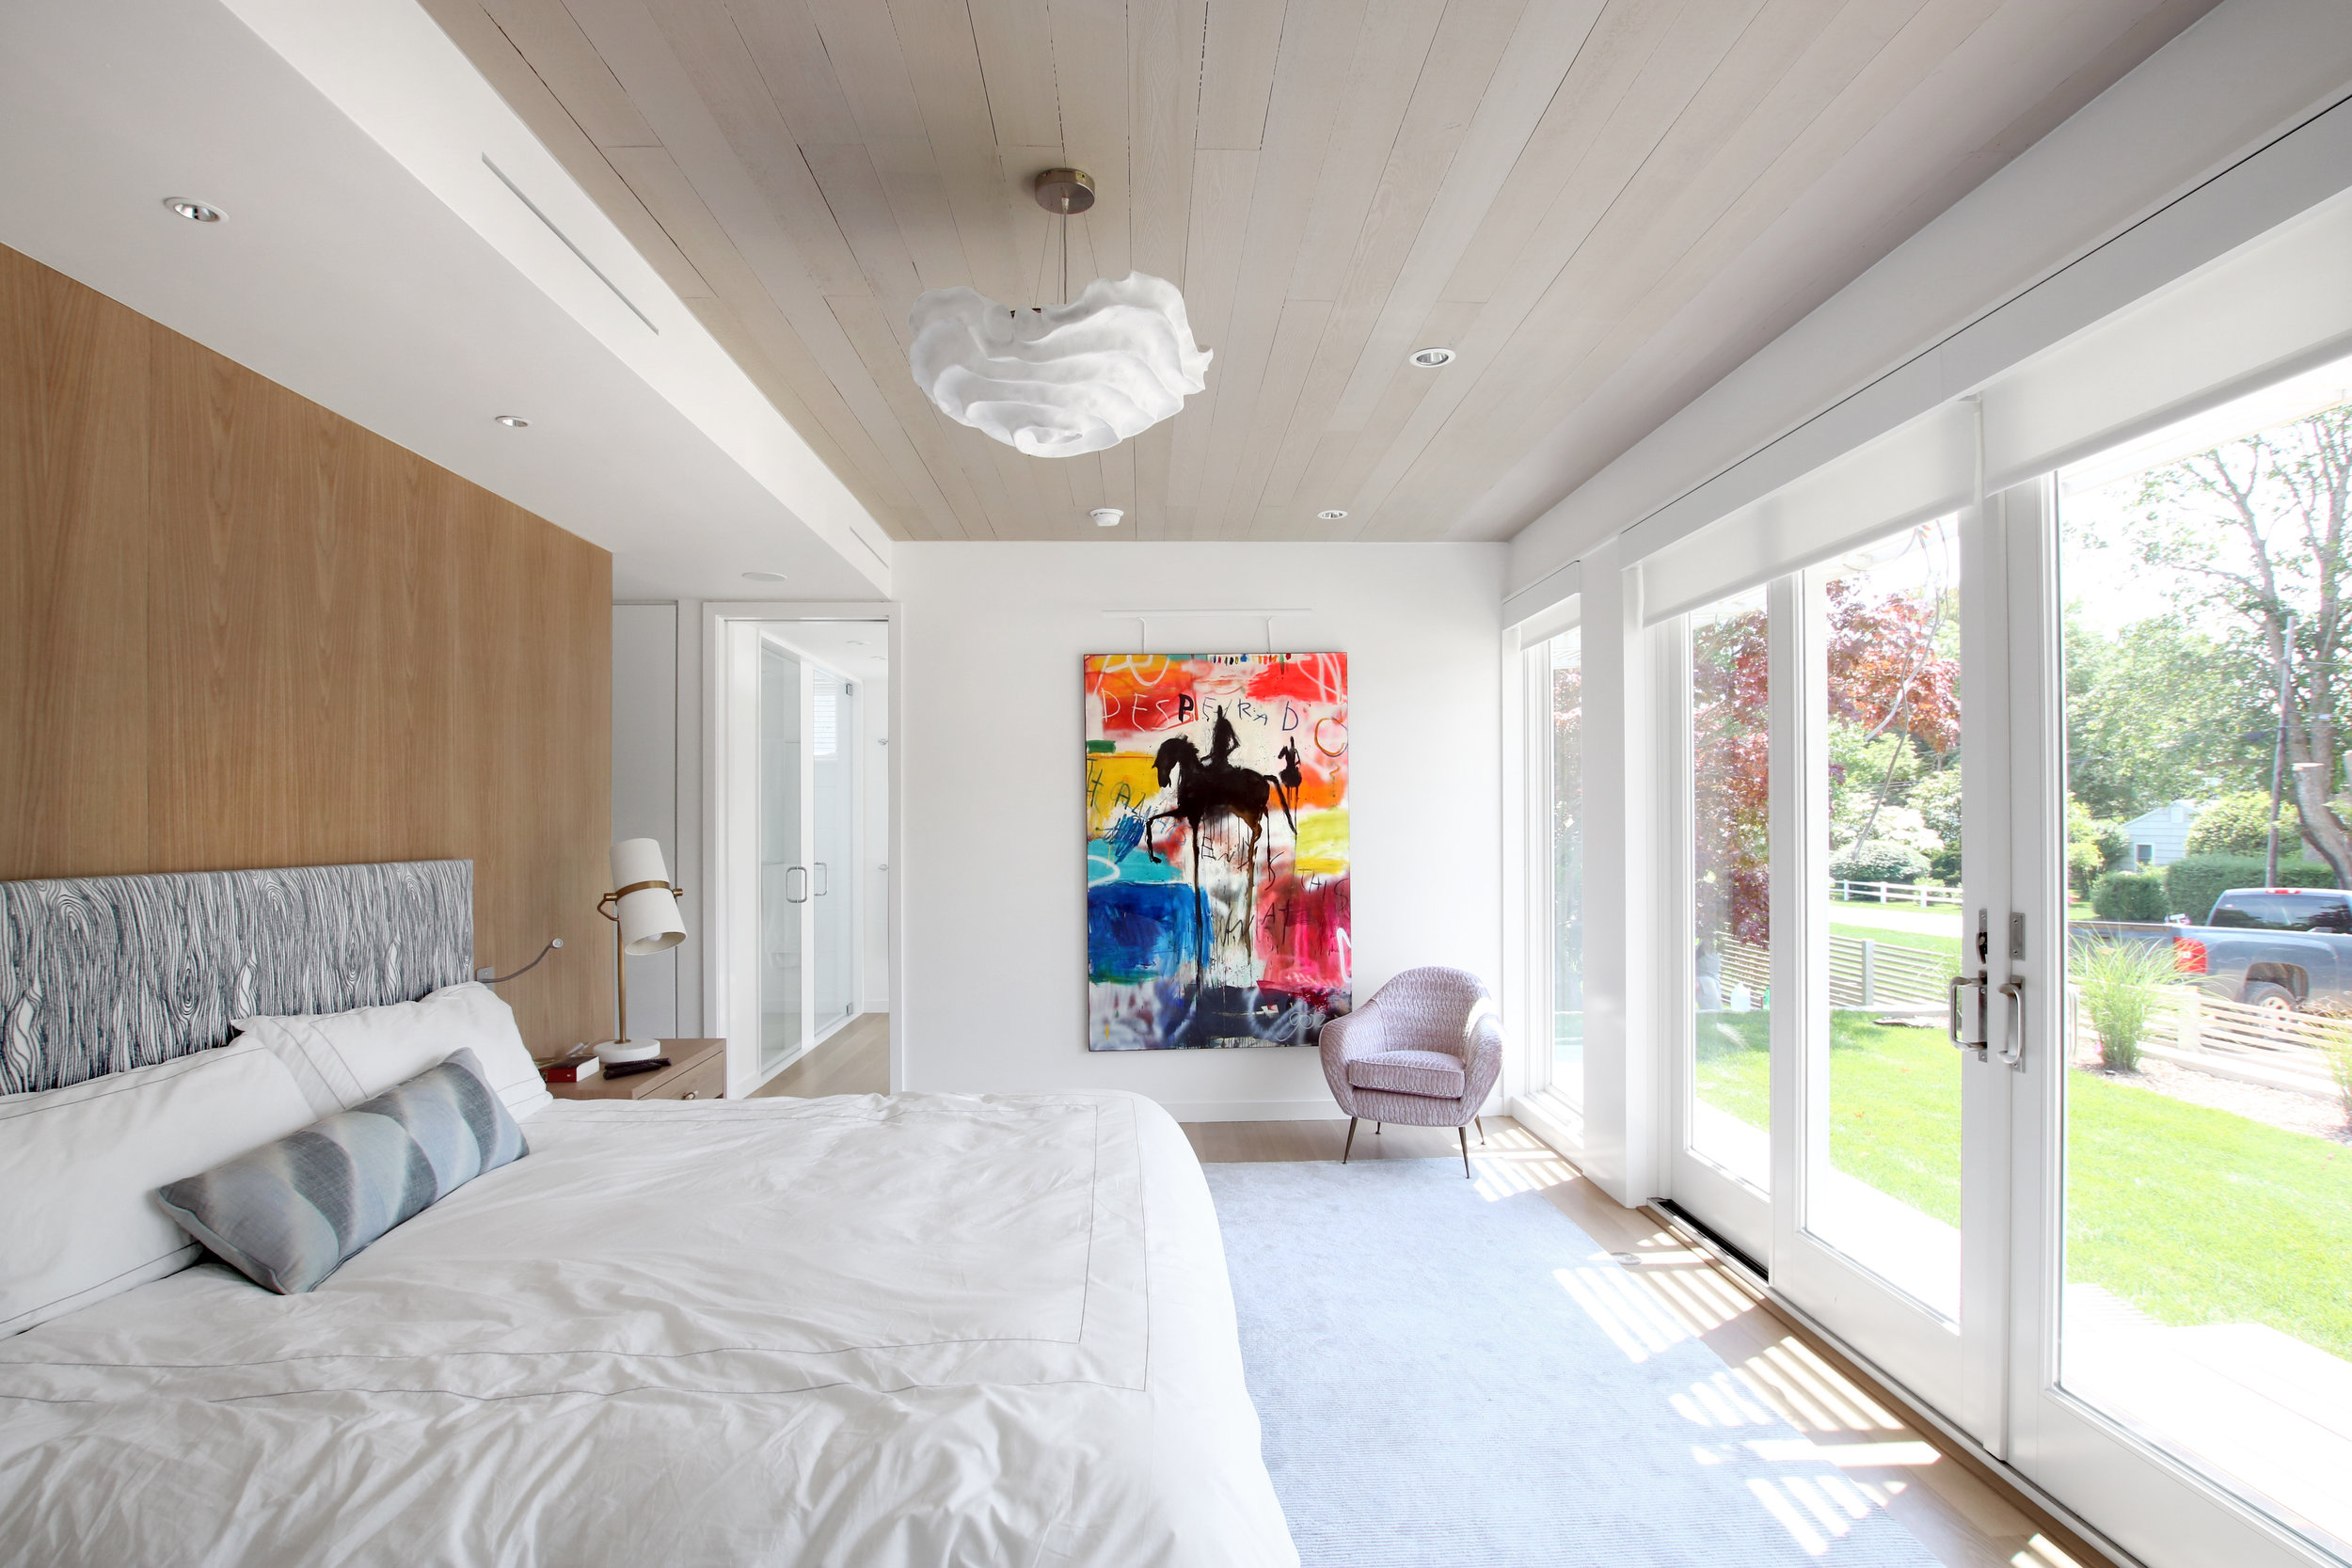 30-re4a-resolution-4-architecture-modern-modular-prefab-bridgehampton house-master-bed-cedar-ceiling.jpg